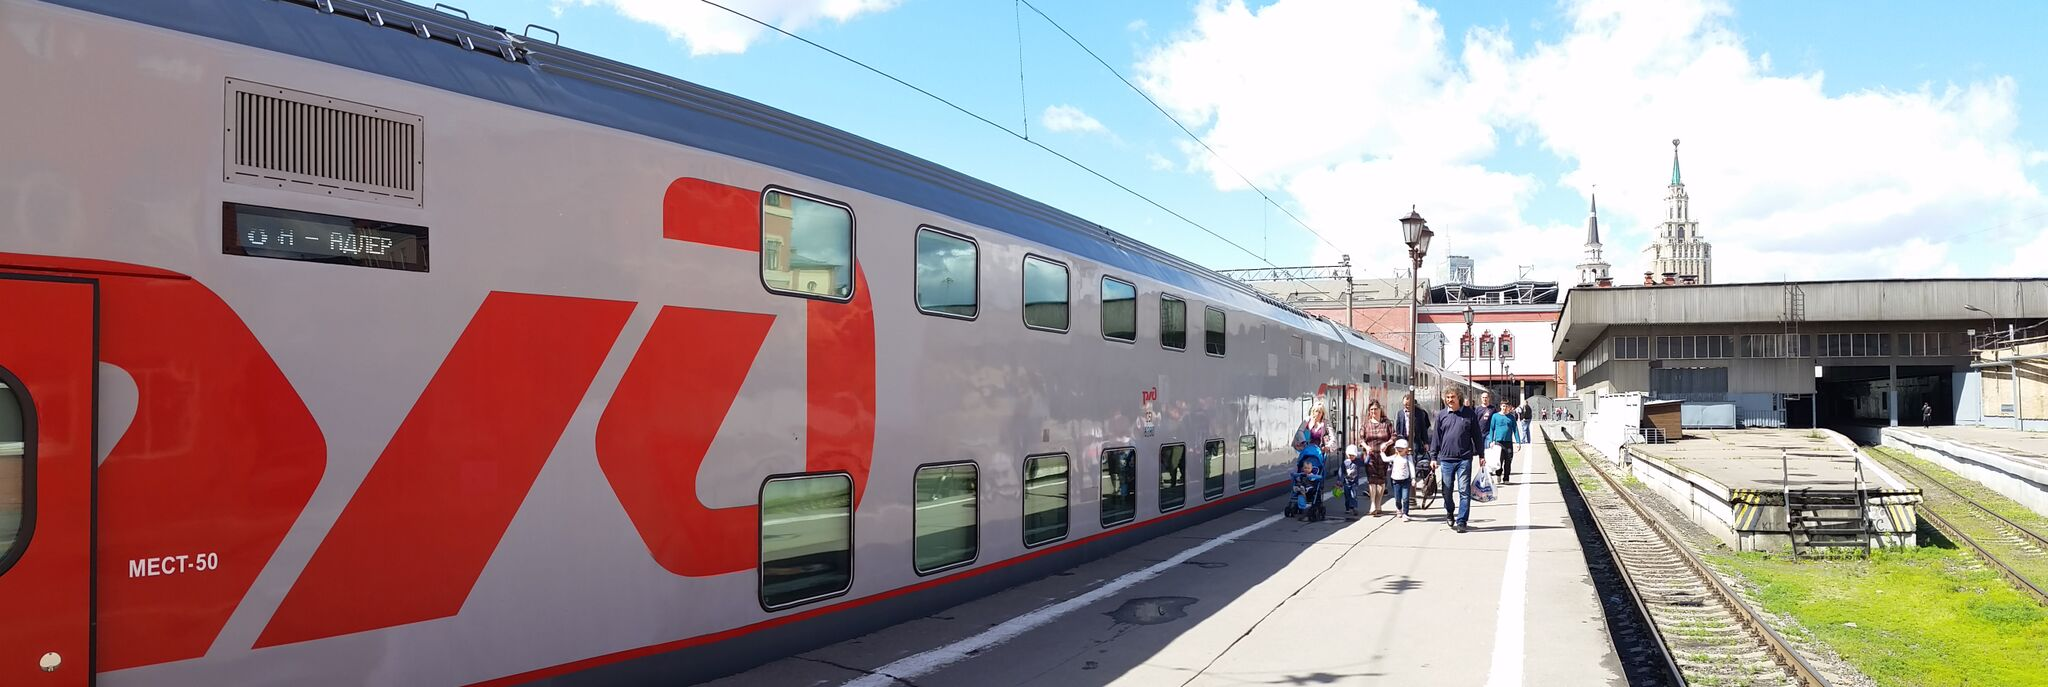 These double-decker trains go from the Kazansky train station in Moscow to the Russian south: In less then one day you'll arrive in Sochi on the Black Sea. / Peggy Lohse